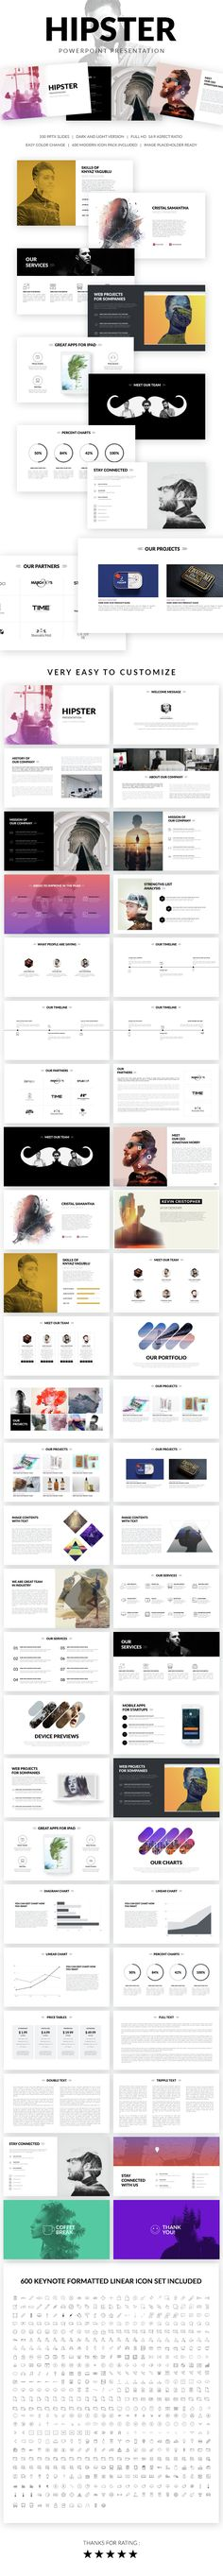 Hipster Powerpoint Presentation Template (PowerPoint Templates)